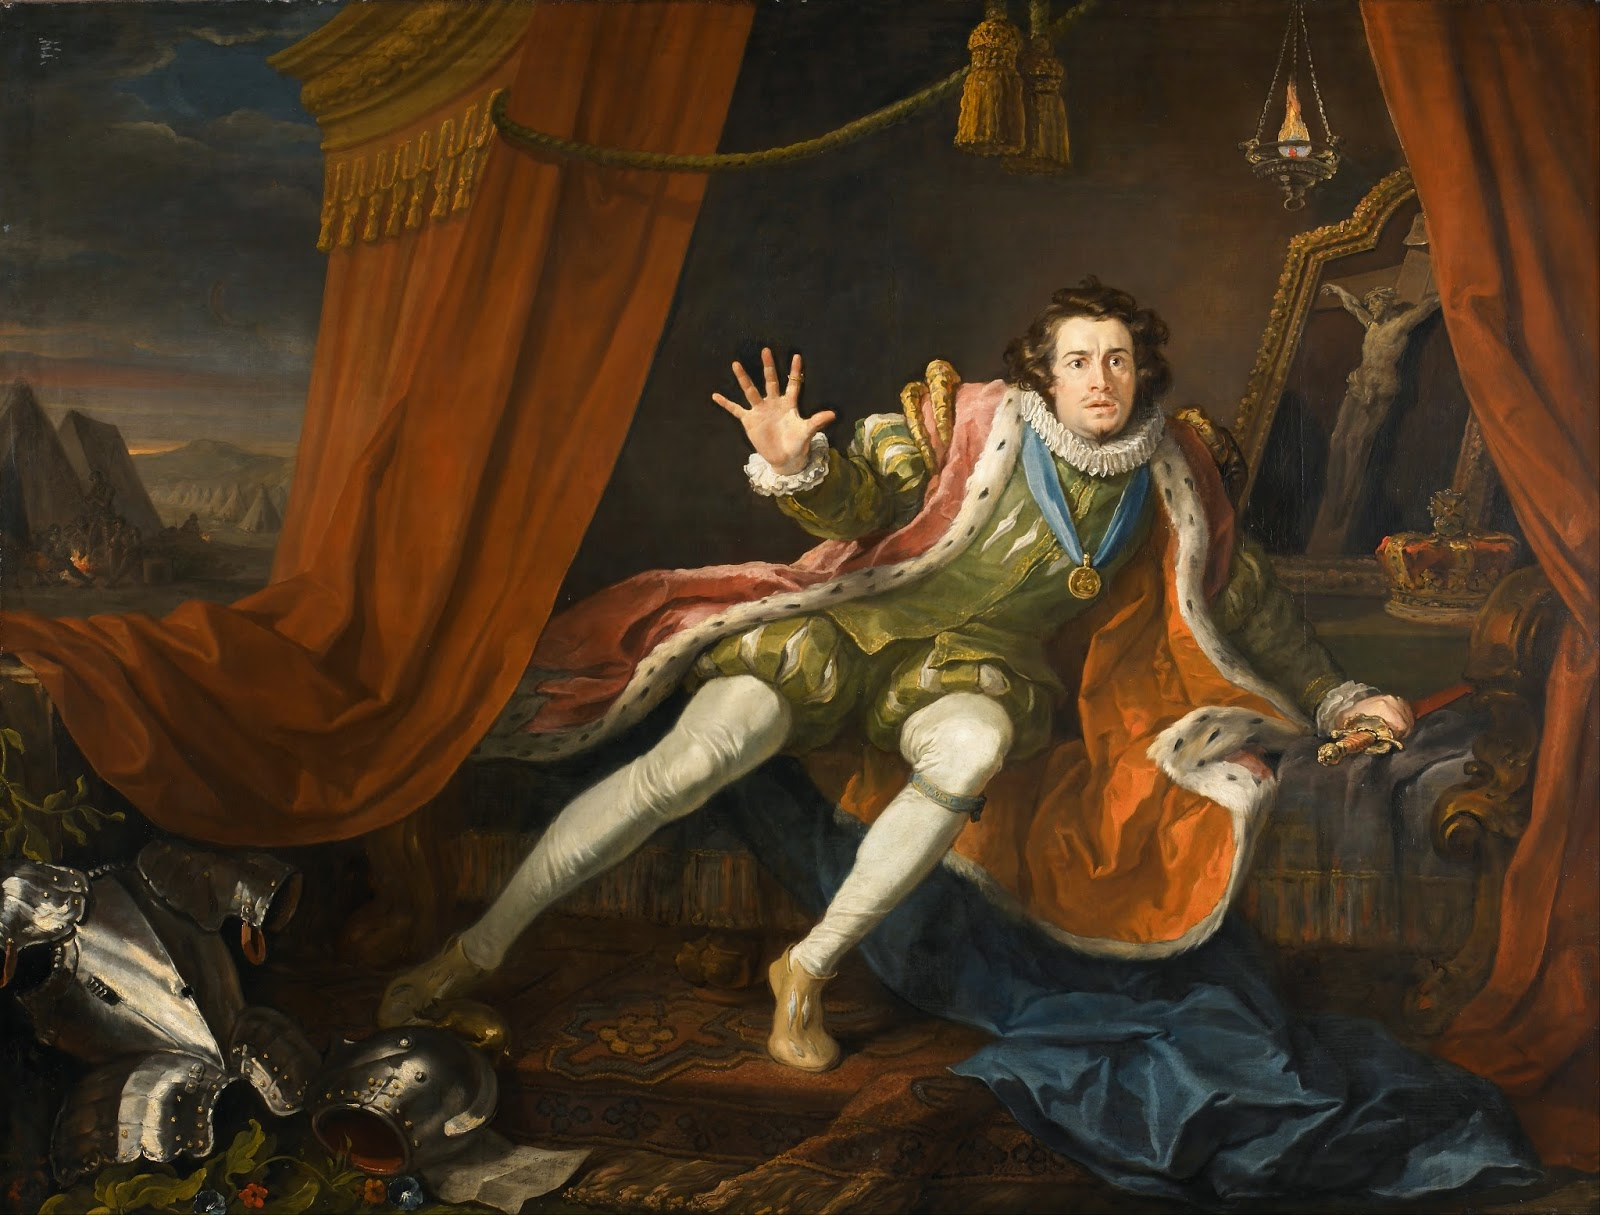 7893c7276c383 Portrait by Hogarth of Garrick as Richard III, on the restless night before  the battle of Bosworth field. Painted in 1745, only a few years after  Garrick's ...